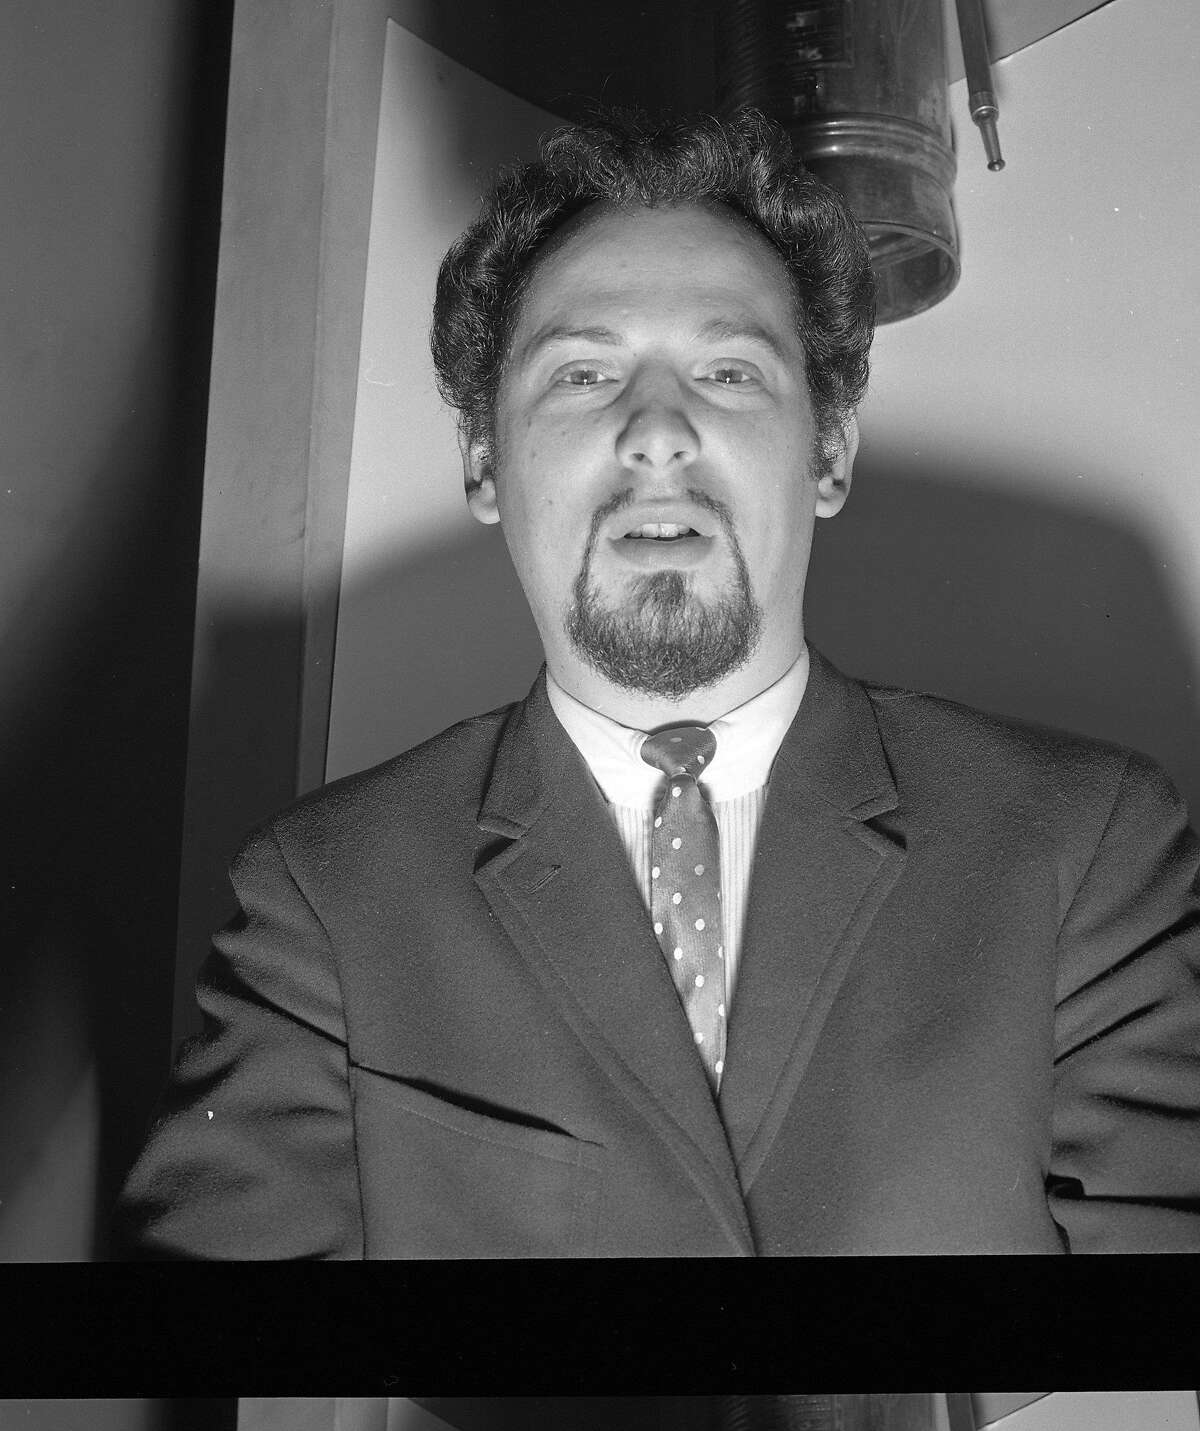 In 1964, Anton Szandor LaVey (born Howard Stanton Levey) was a 34-year-old ex-carny musician with deep interest in the occult. He had already adopted his trademark goatee but the shaved head would not come until 1966, when he founded his Church of Satan in San Francisco.